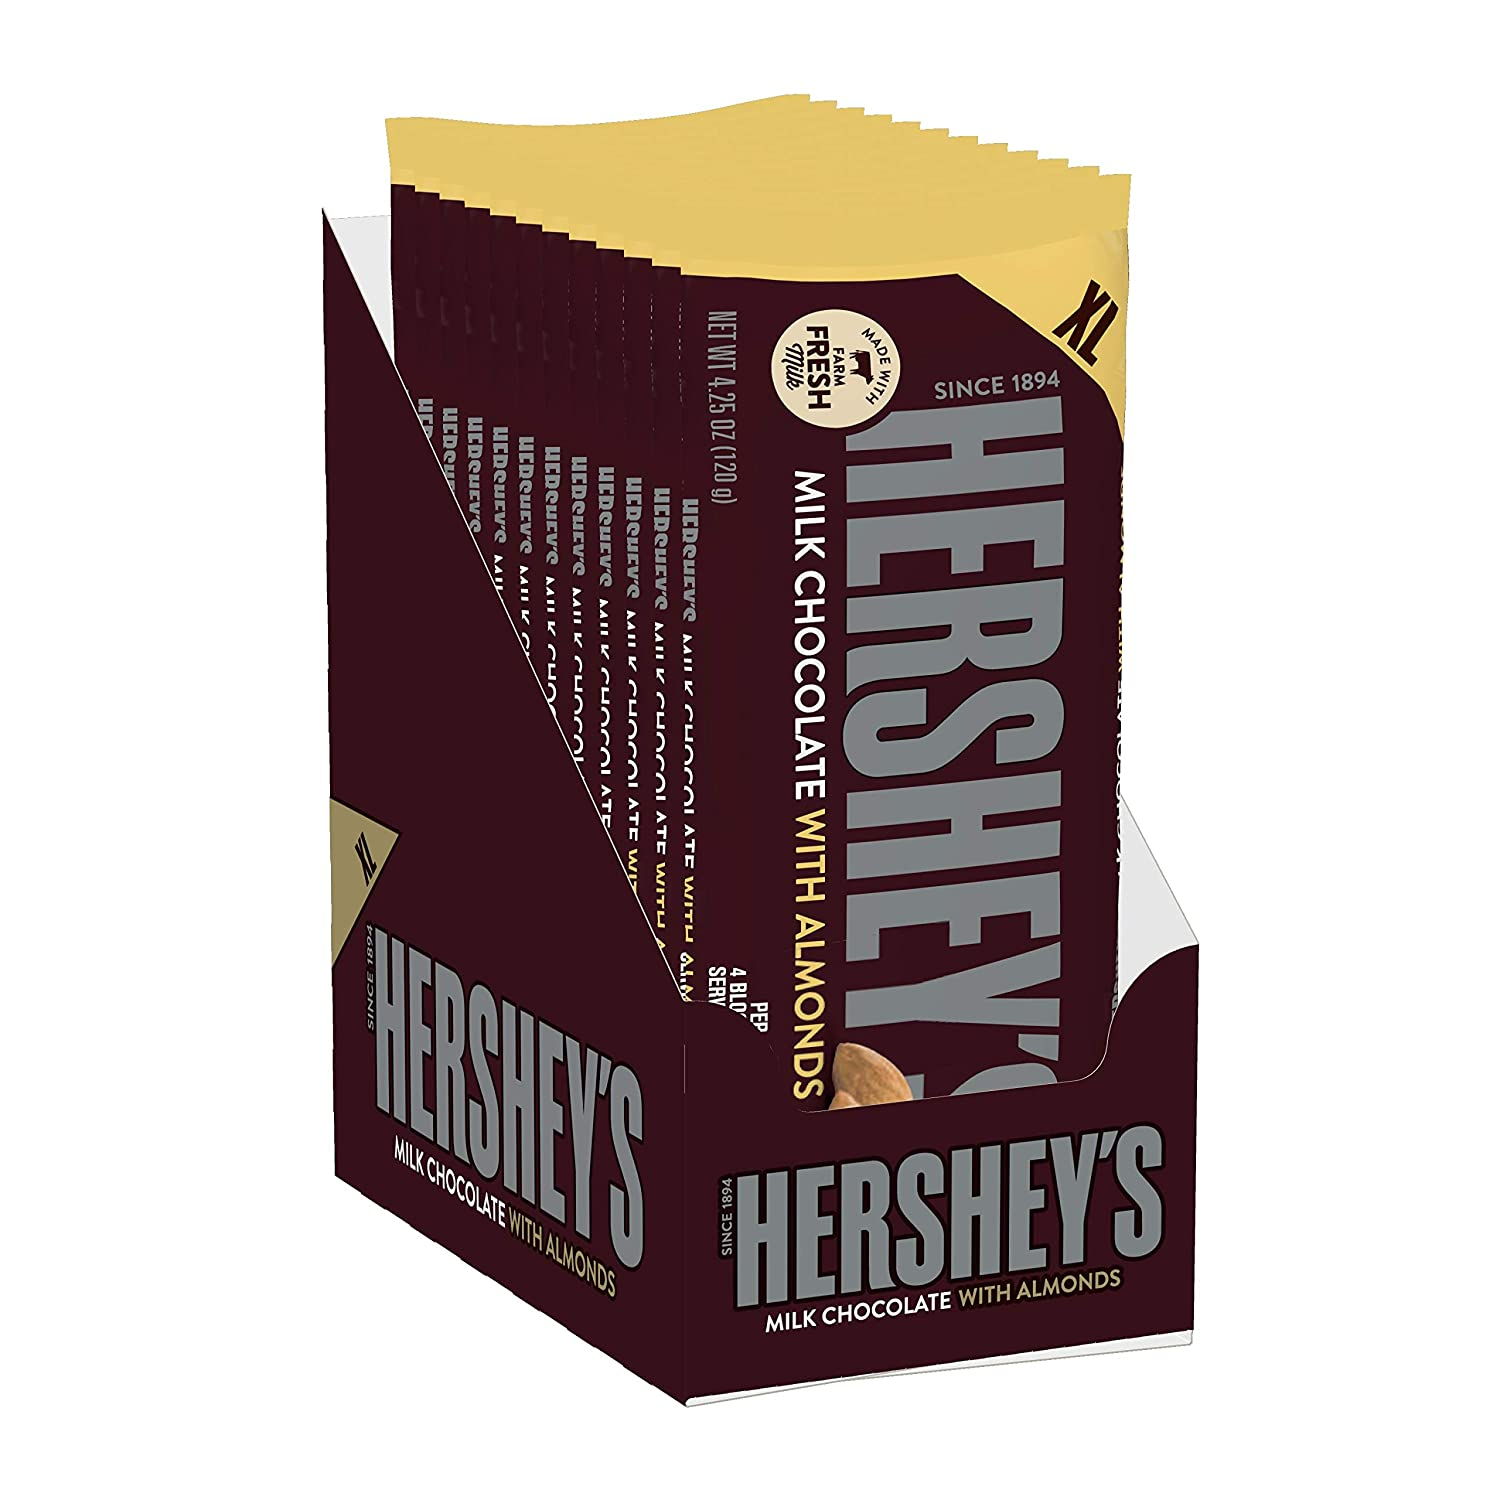 HERSHEY'S Bulk Holiday Milk Chocolate Candy Bar with Almonds, 4.2 Oz. (Pack of 12)